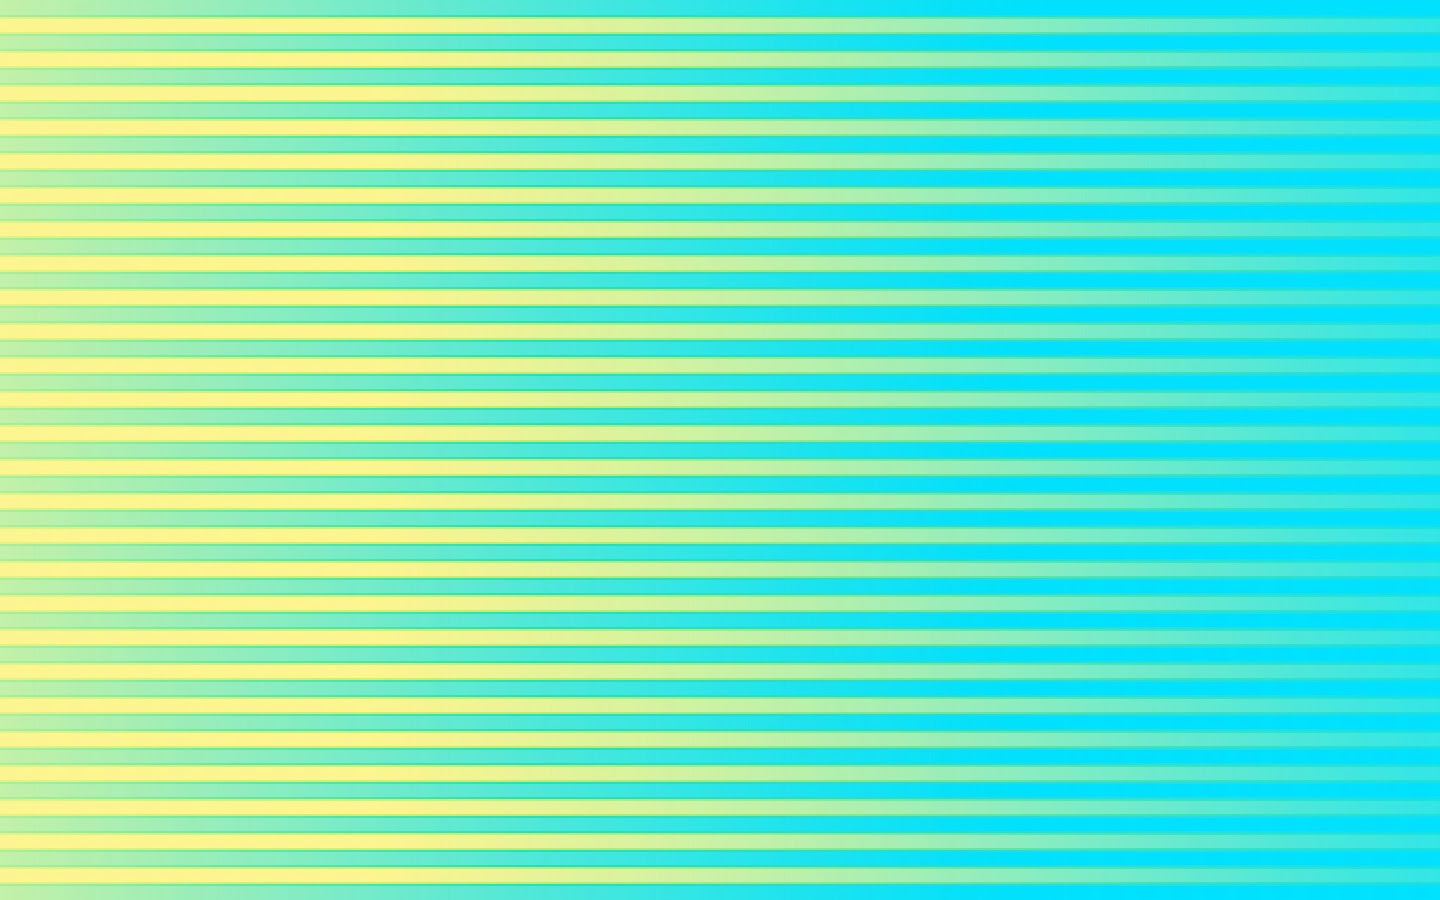 Blue Striped Wallpaper: Blue And Yellow Striped Wallpaper